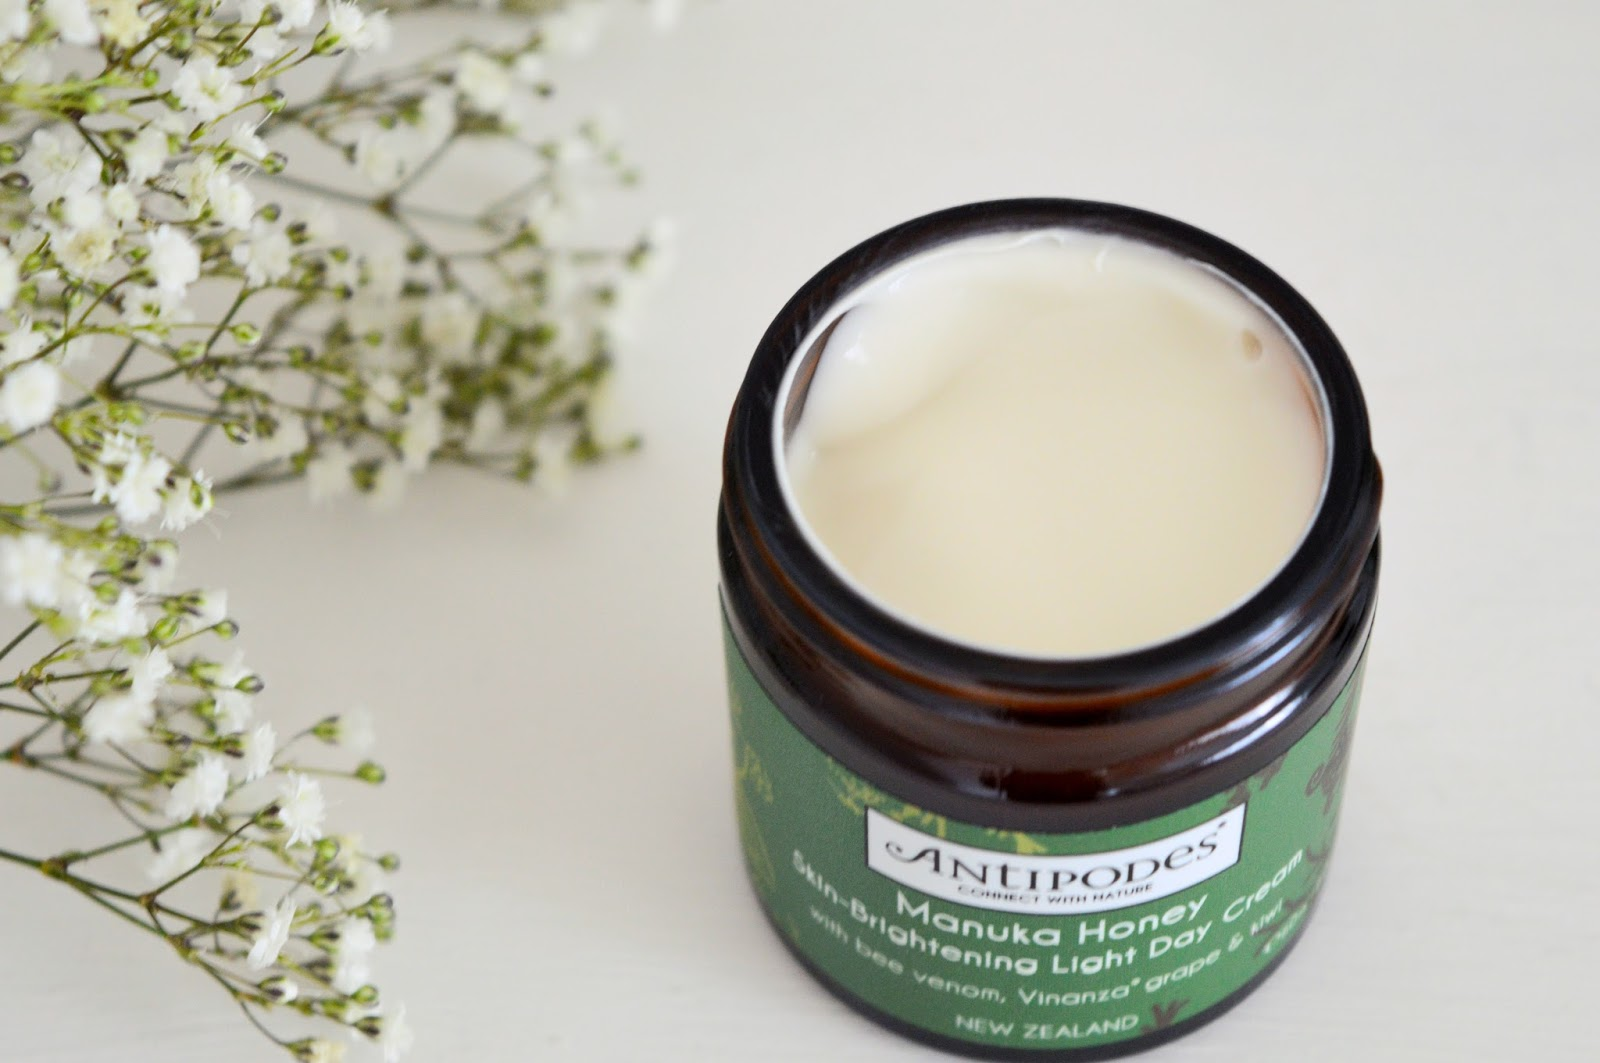 Antipodes Manuka Honey Skin Brightening Day Cream review, UK beauty blog